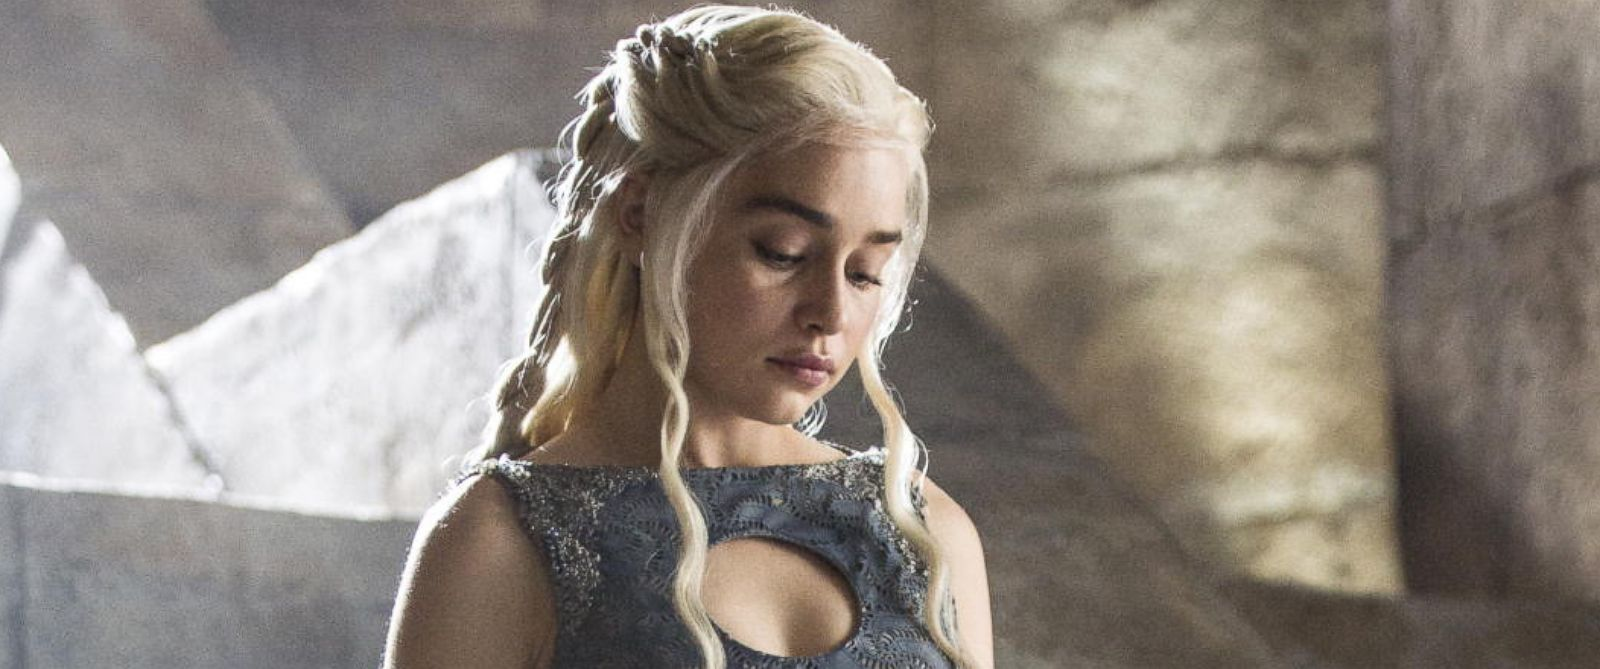 "PHOTO: Emilia Clarke appears as Daenerys Targaryen in HBOs ""Game of Thrones"" episode 40, which aired on June 15, 2014."